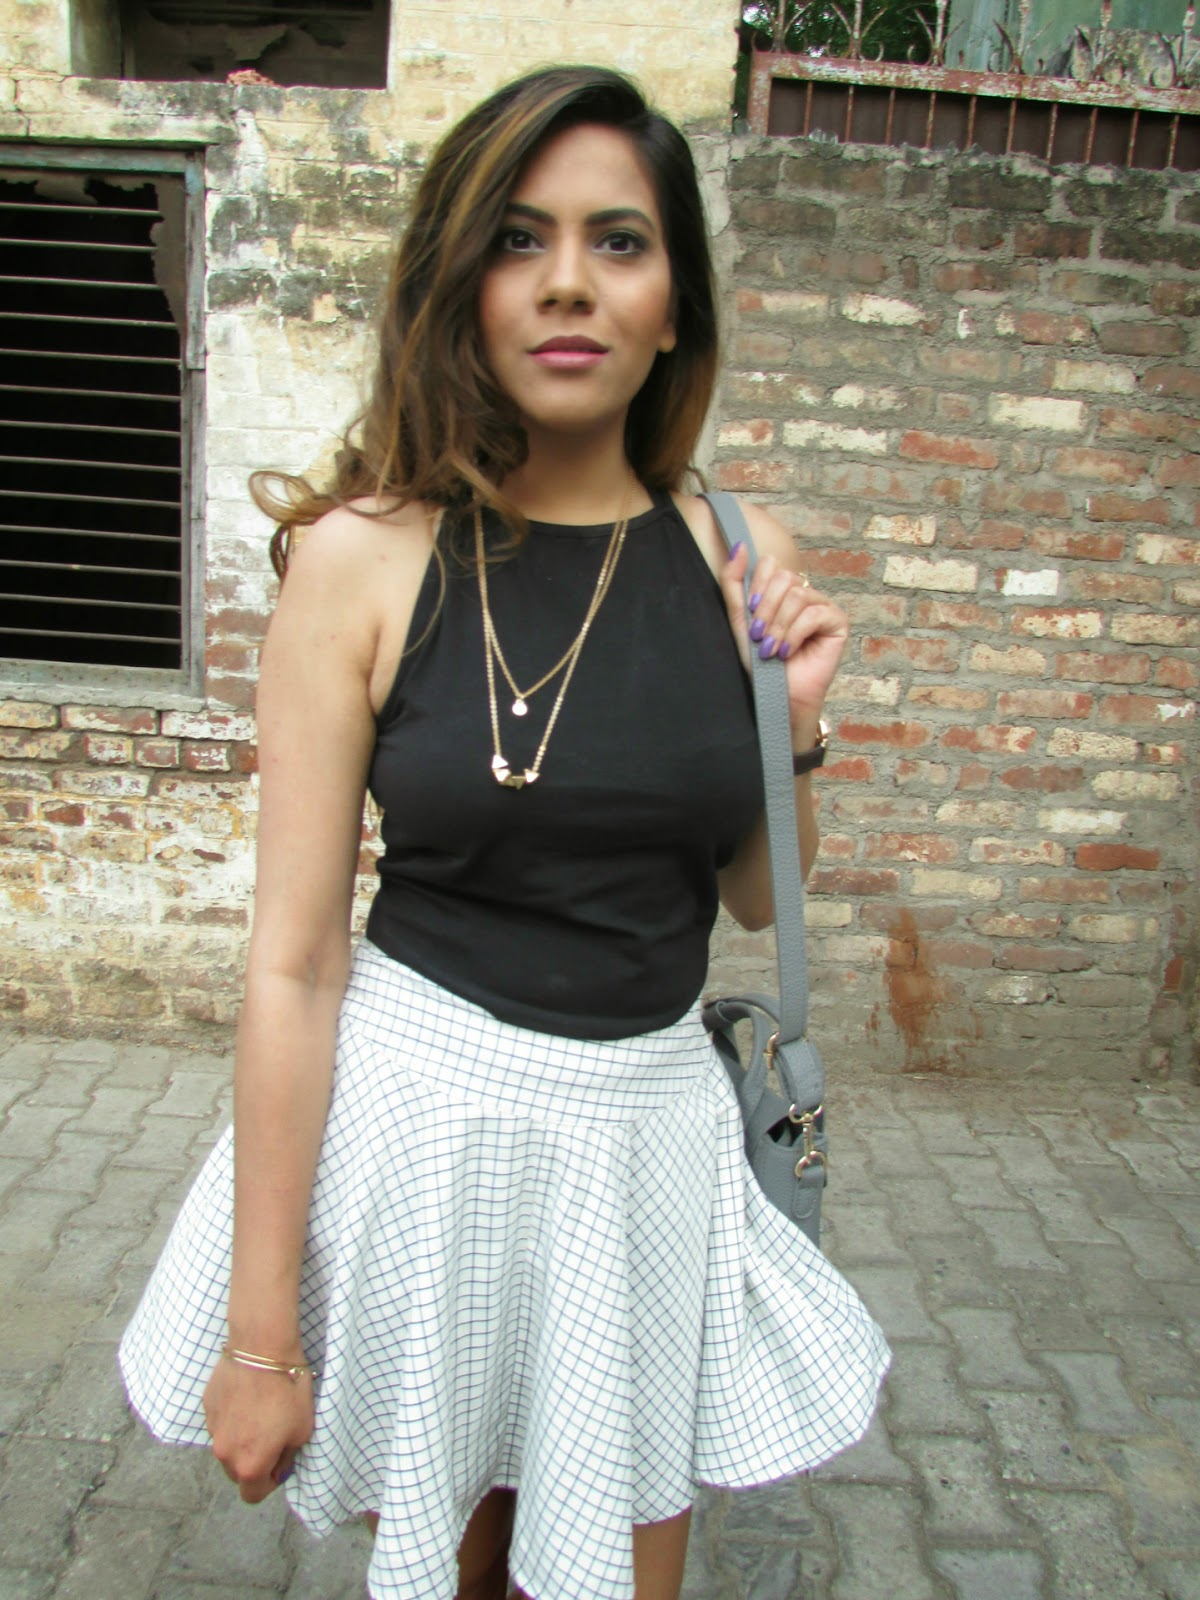 Crop top, high waist skirt, circle skirt, black crop top, sexy back crop top, fashion, Stalkbuylove, day glam outfit, day occasion outfit, how to style crop top, how to style circle skirt, indian fashion blogger, lastest trend clothing online , lounge pants, how to style lounge pants, lounge pants india, stalkbuylove, casual chic style outfit, summer trends, indian fashion blogger, latest fashion india online, cheap skinny lounge pants,stalkbuylove india  stalkbuylove coupon code, latest trend clothing india online, lastest fashion online, summer trends 2015, spring trends 2015, summer clothing online, cheap blue lounge pants, how to style lounge pants for day put, lazy day outfit, casual summer outfit, beauty , fashion,beauty and fashion,beauty blog, fashion blog , indian beauty blog,indian fashion blog, beauty and fashion blog, indian beauty and fashion blog, indian bloggers, indian beauty bloggers, indian fashion bloggers,indian bloggers online, top 10 indian bloggers, top indian bloggers,top 10 fashion bloggers, indian bloggers on blogspot,home remedies, how to